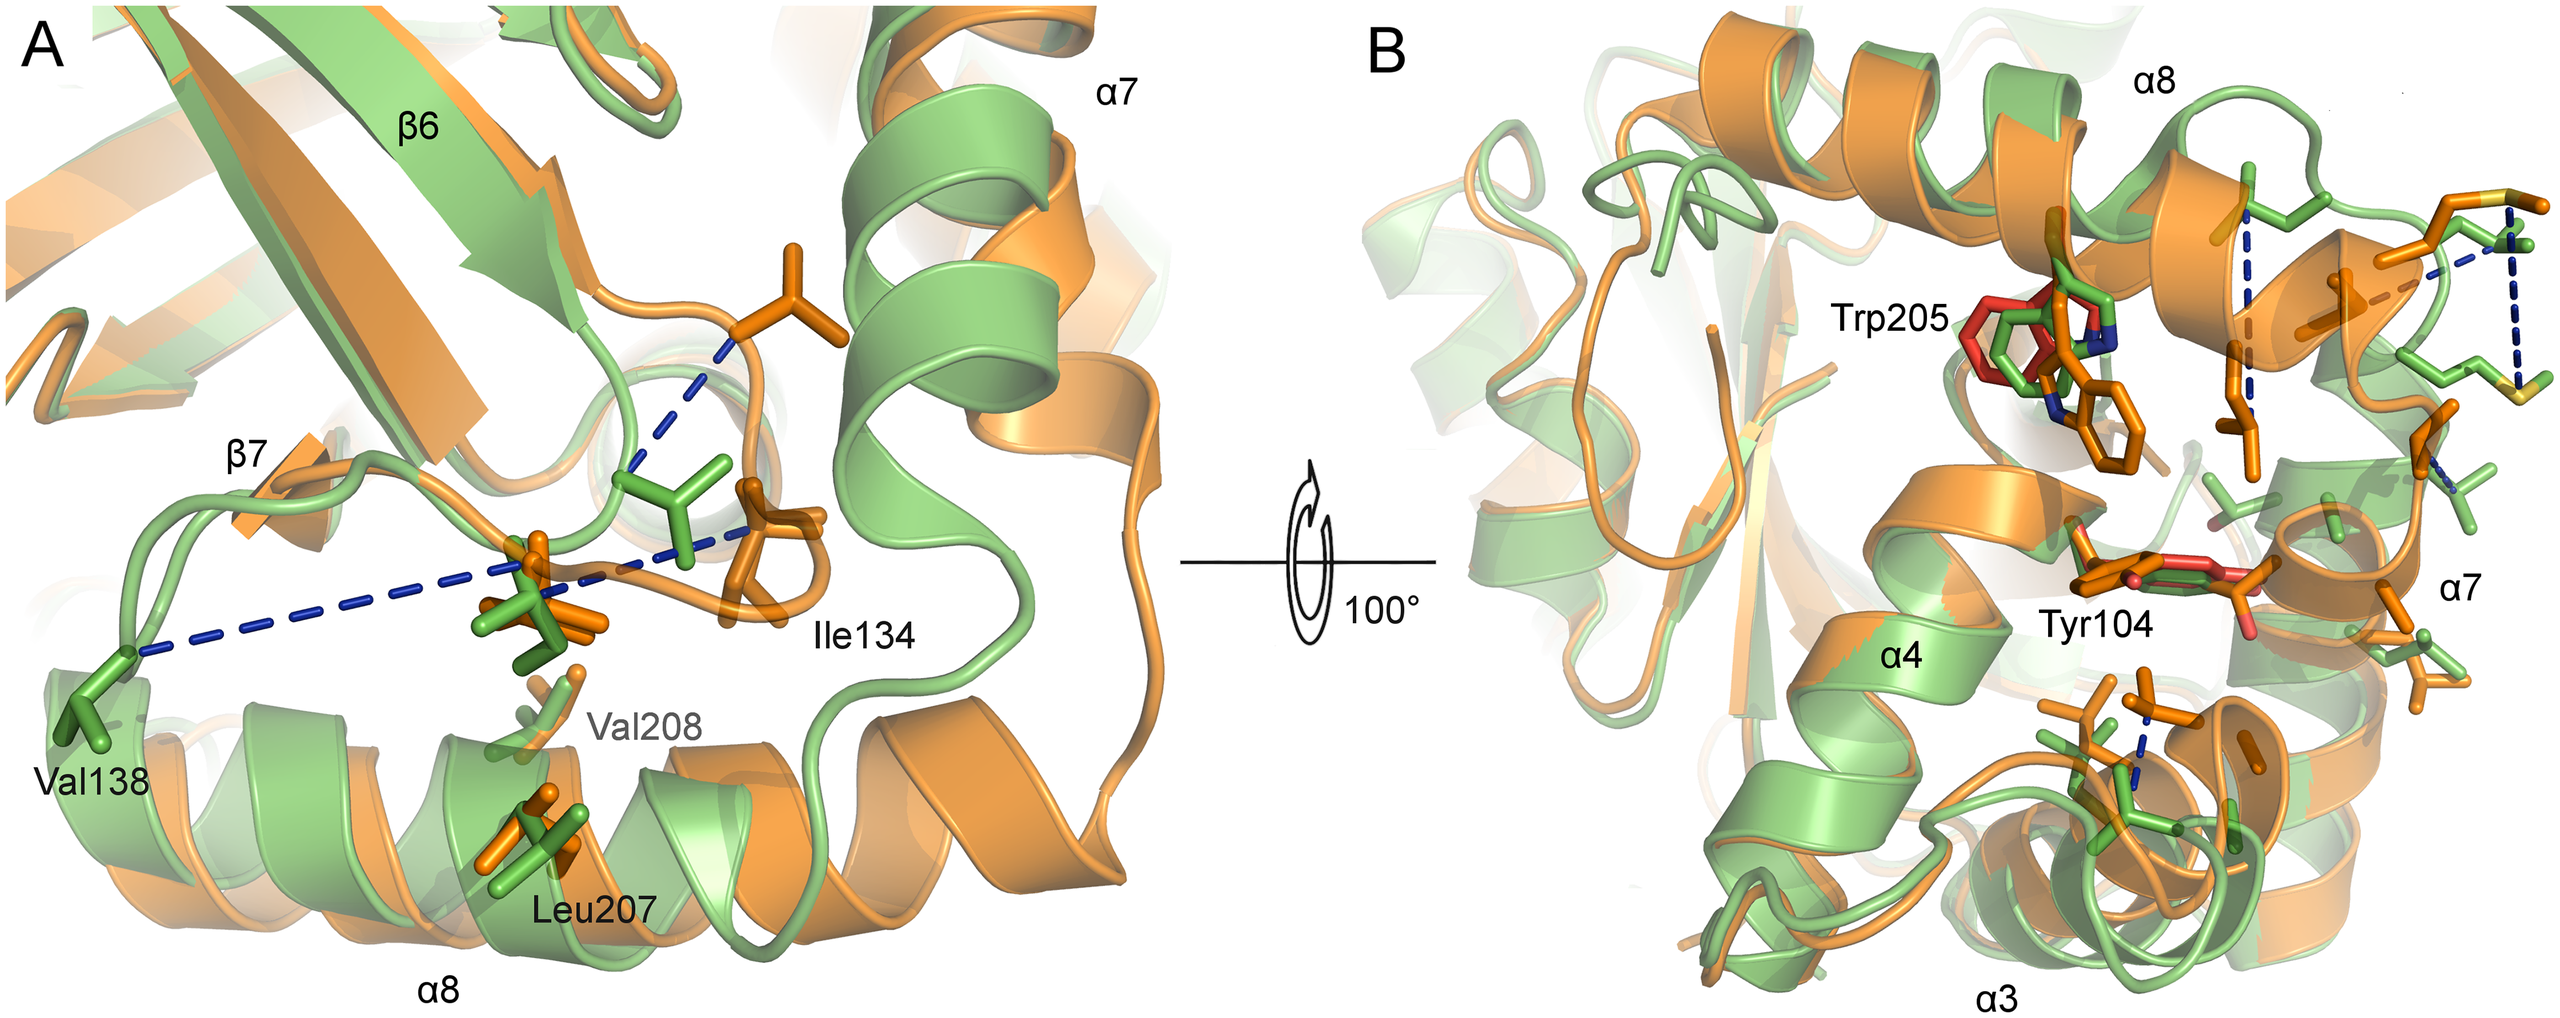 Active site and dimer interface helices of superposed monomers of monomeric and dimeric PrV assemblin.